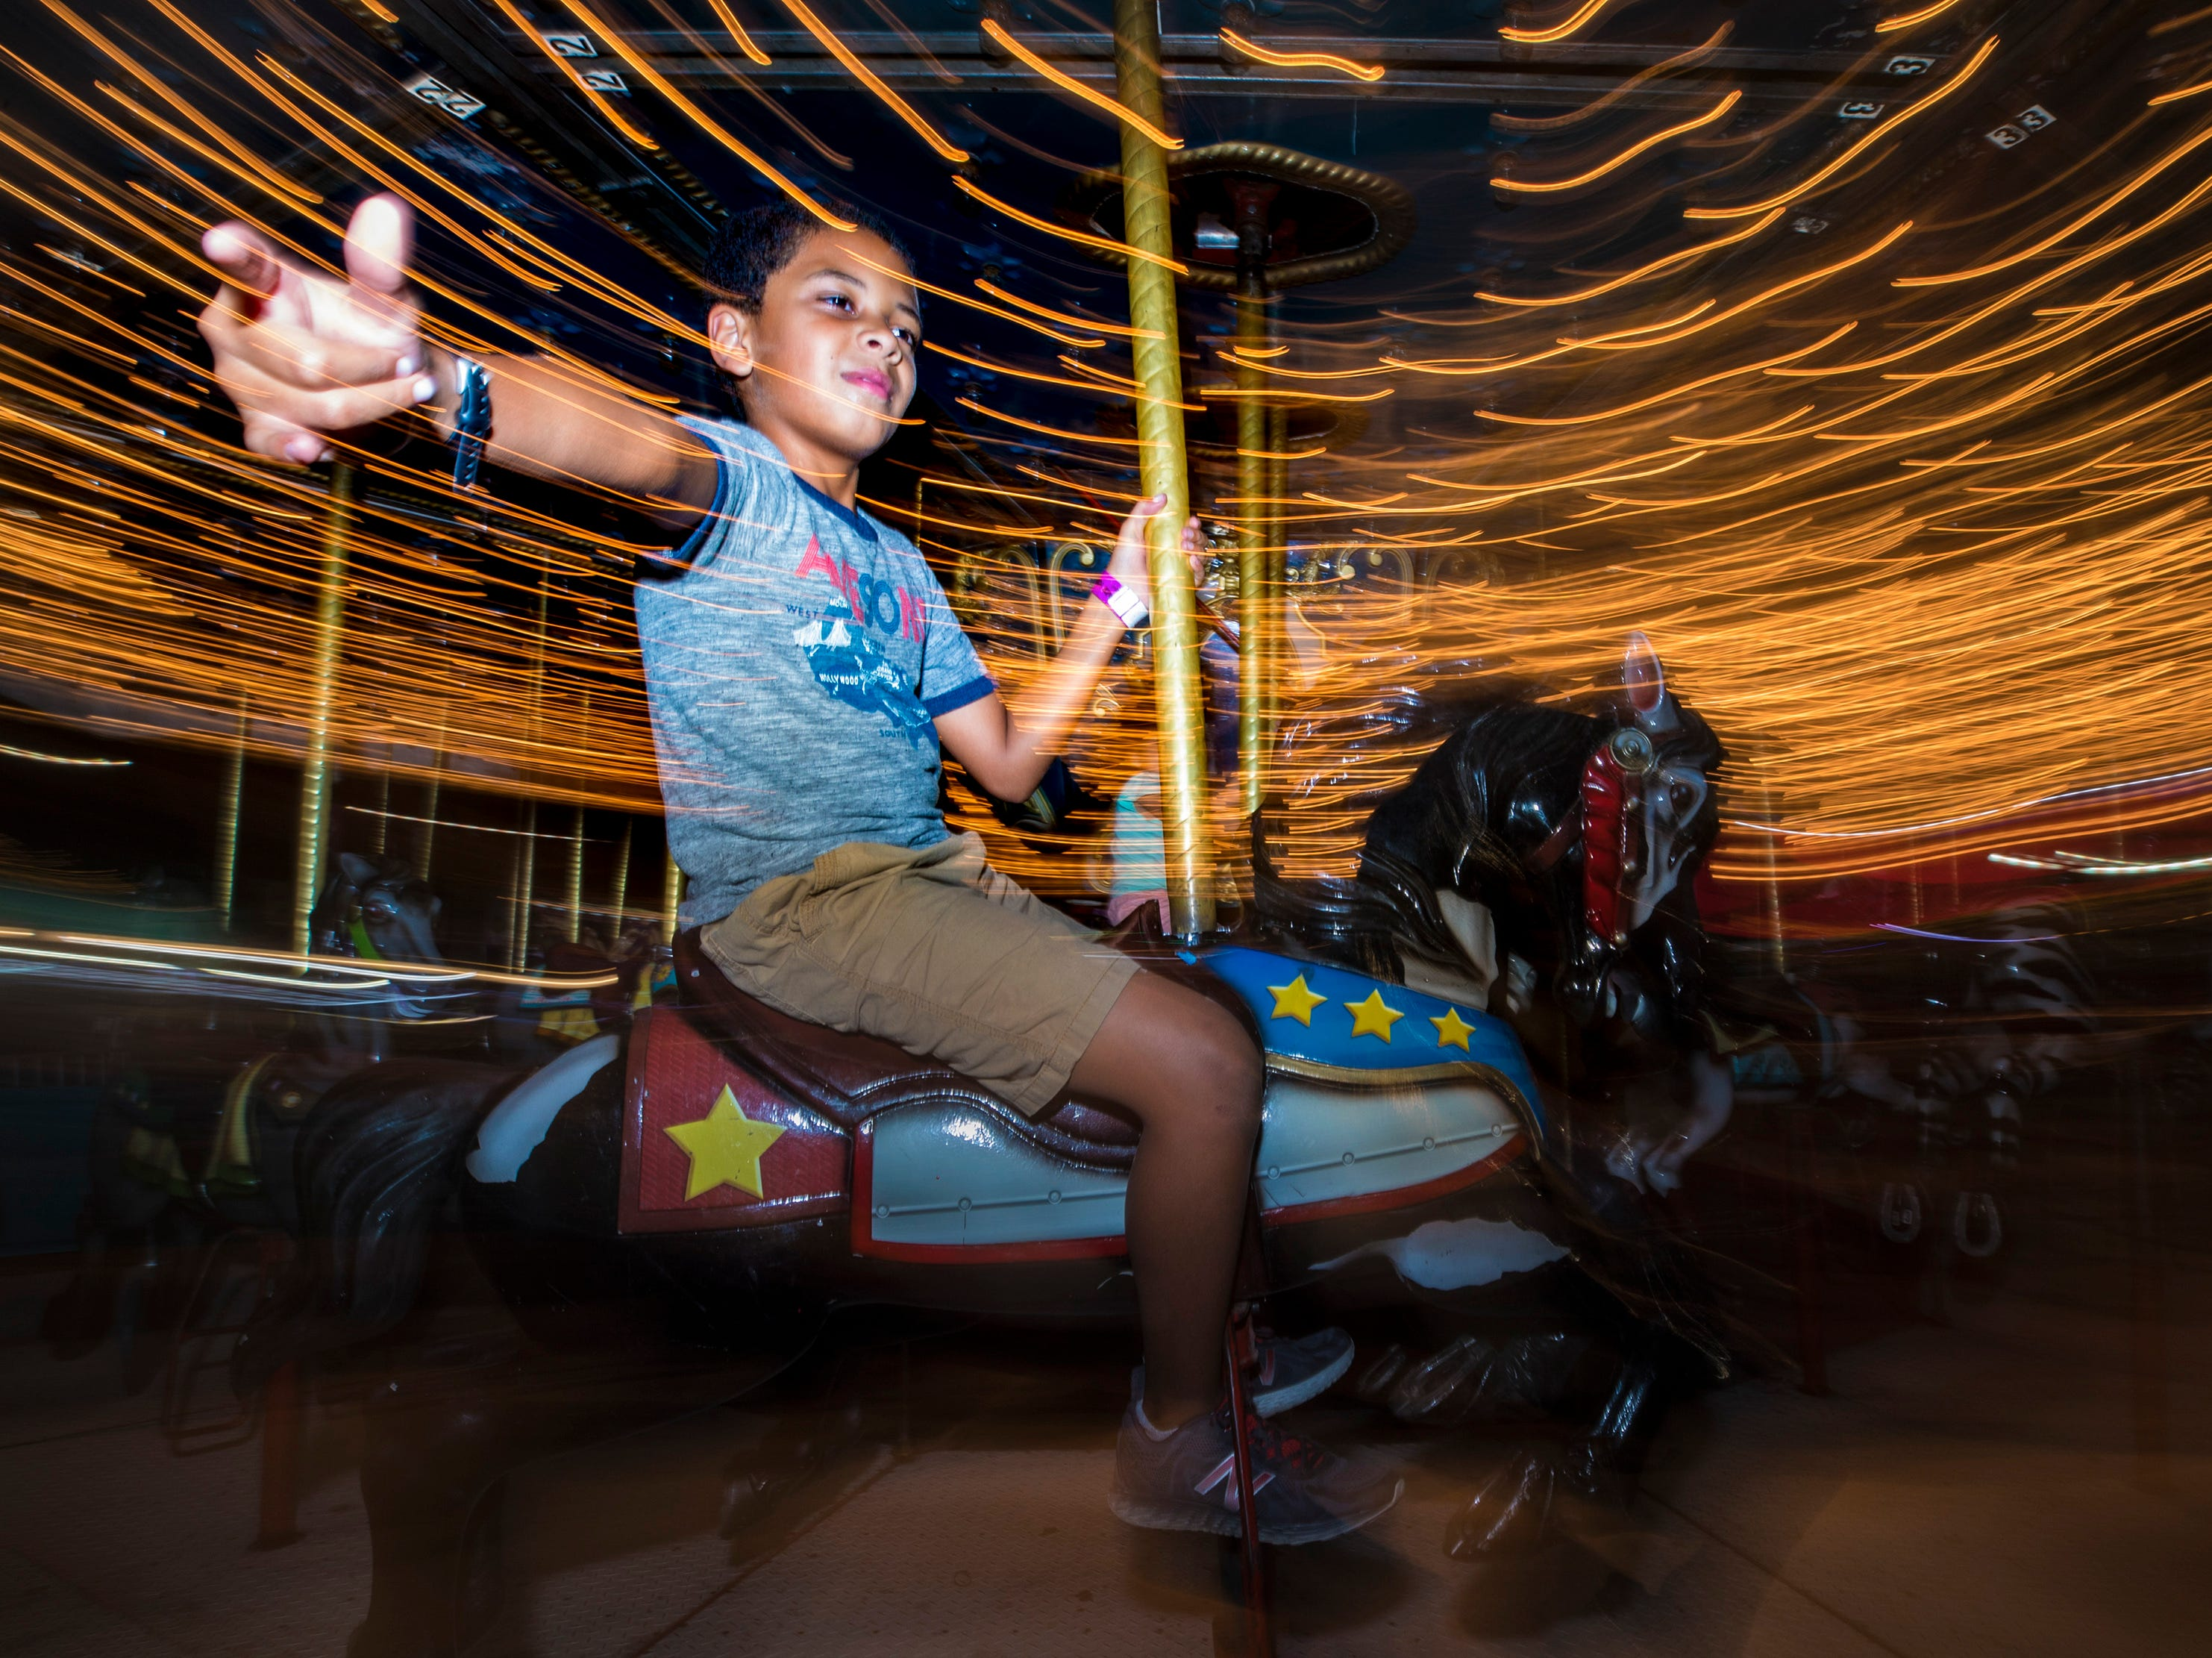 Noah Ransom, 9, rides the carousel at the Kentucky State Fair on Thursday evening. Aug. 24, 2018